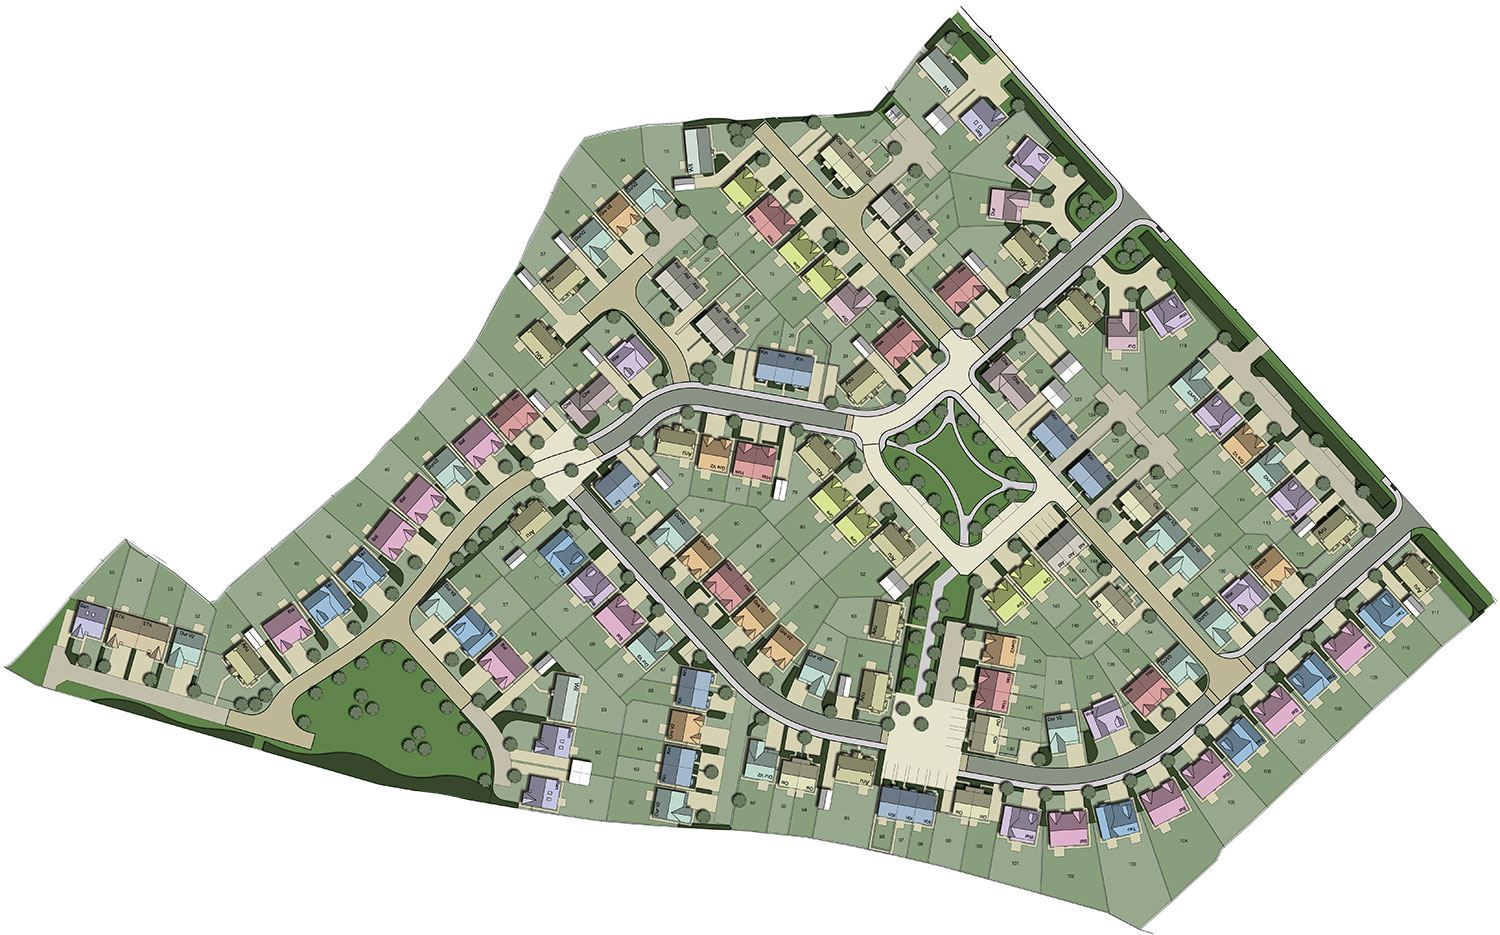 New houses for sale stainburn in workington ca14 1xp for Home site plan